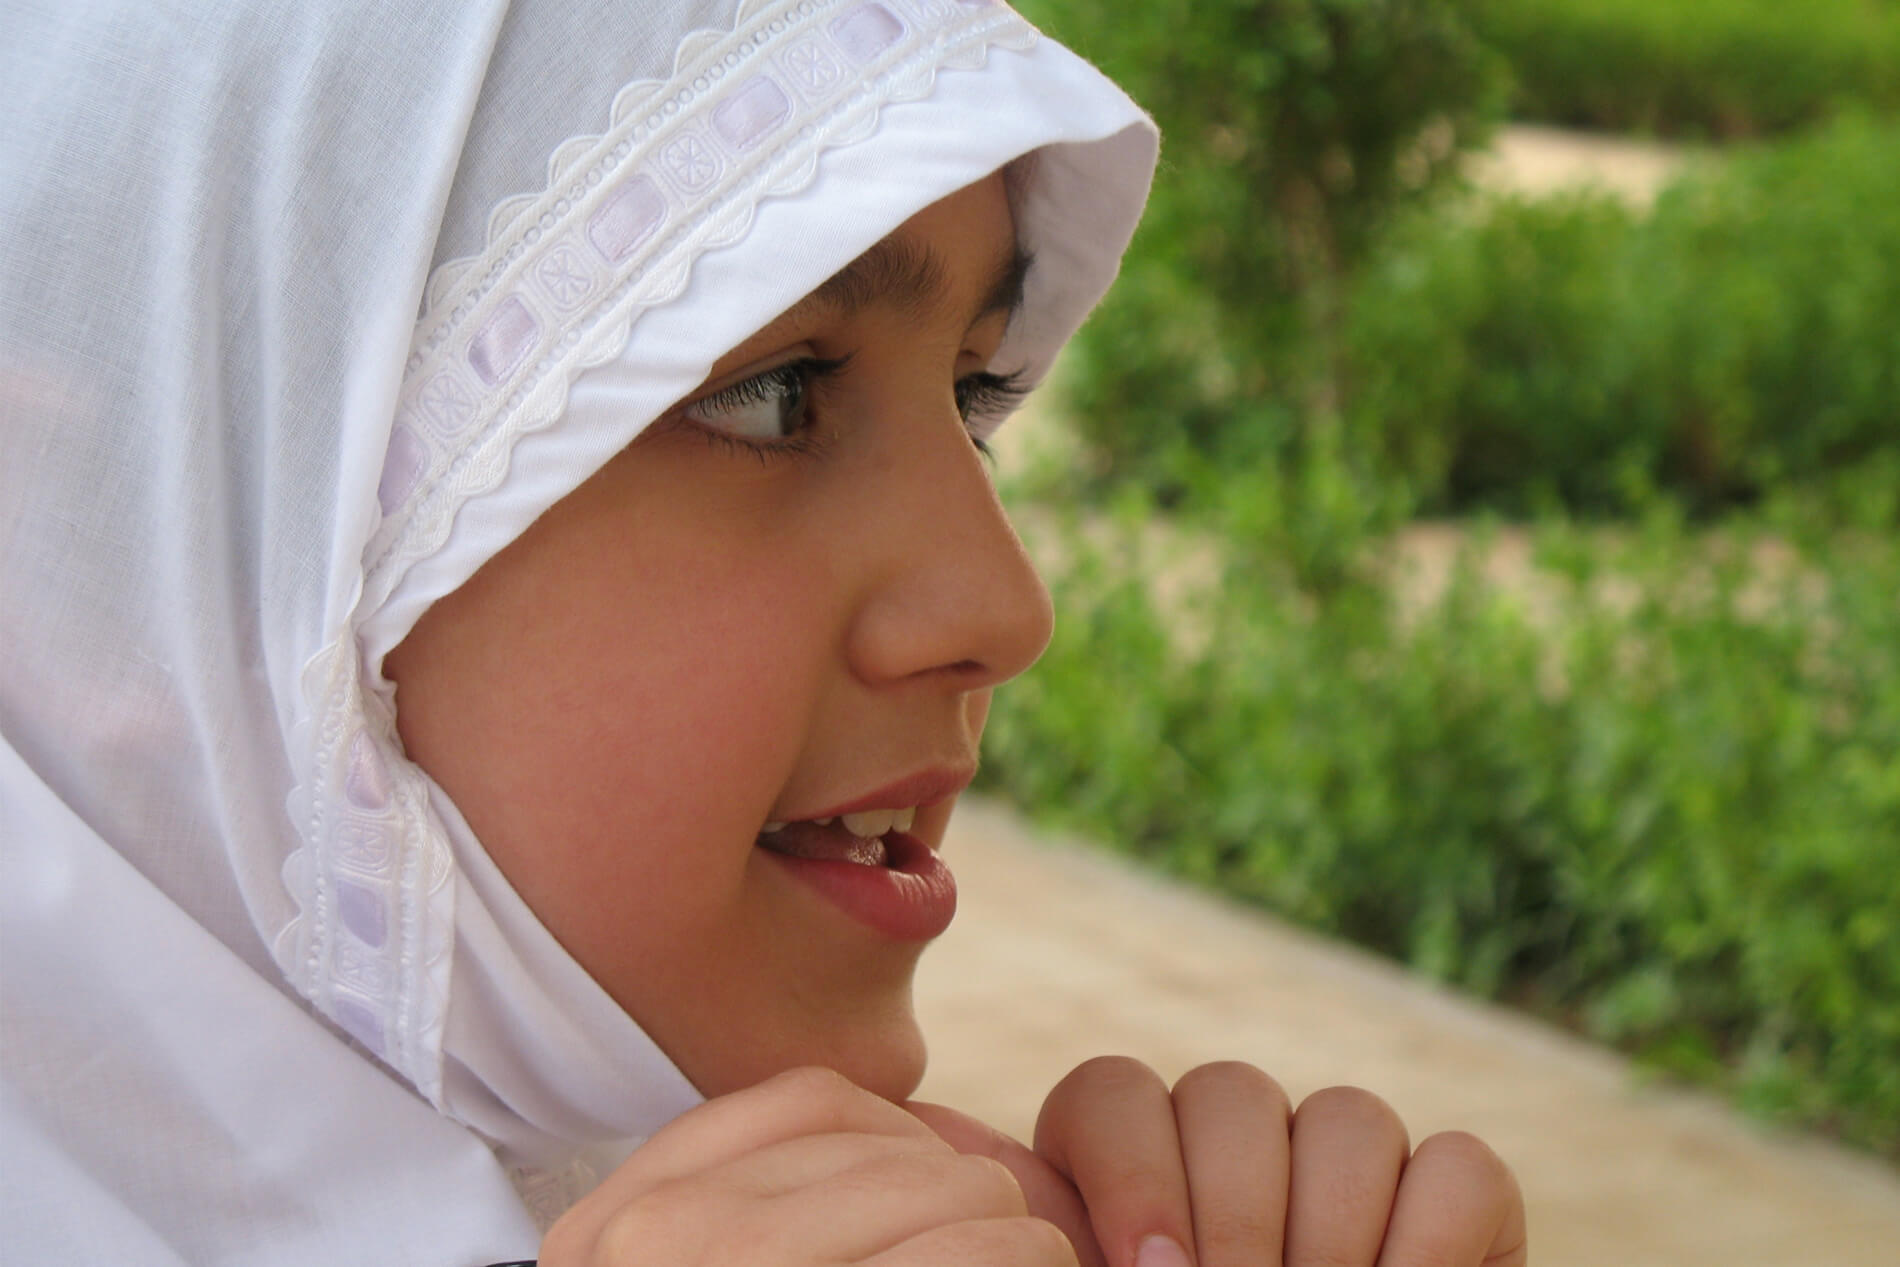 Authorities to question Muslim girls wearing Hijabs